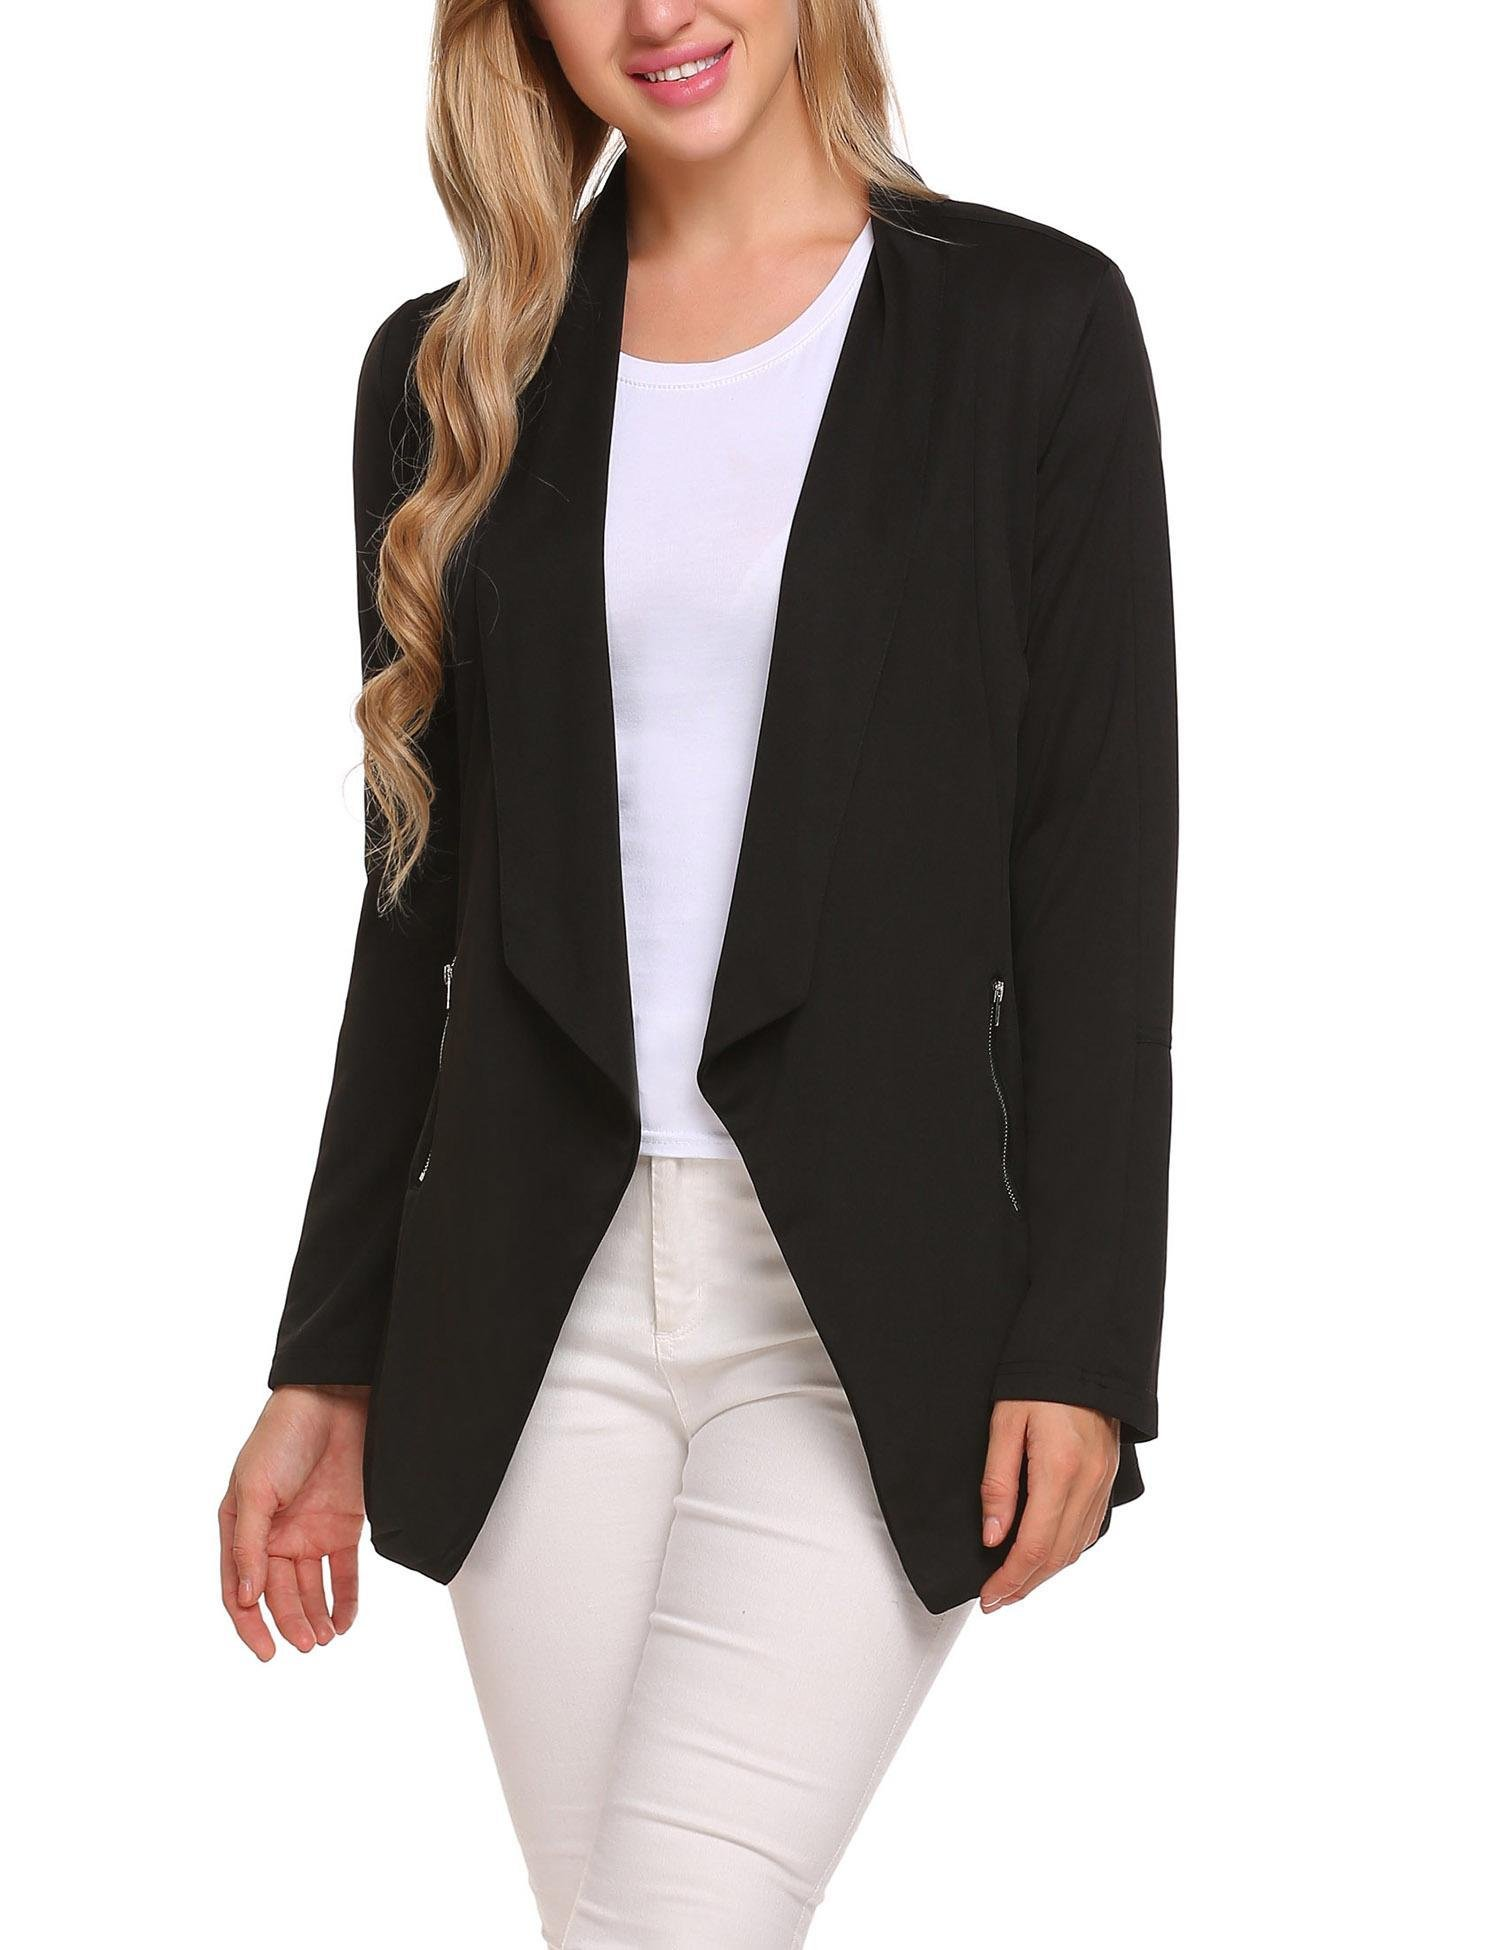 ELESOL Women's Boyfriend Blazer Tailored Suit Coat Jacket Open Front Draped Basic Work Blazer Black/XL